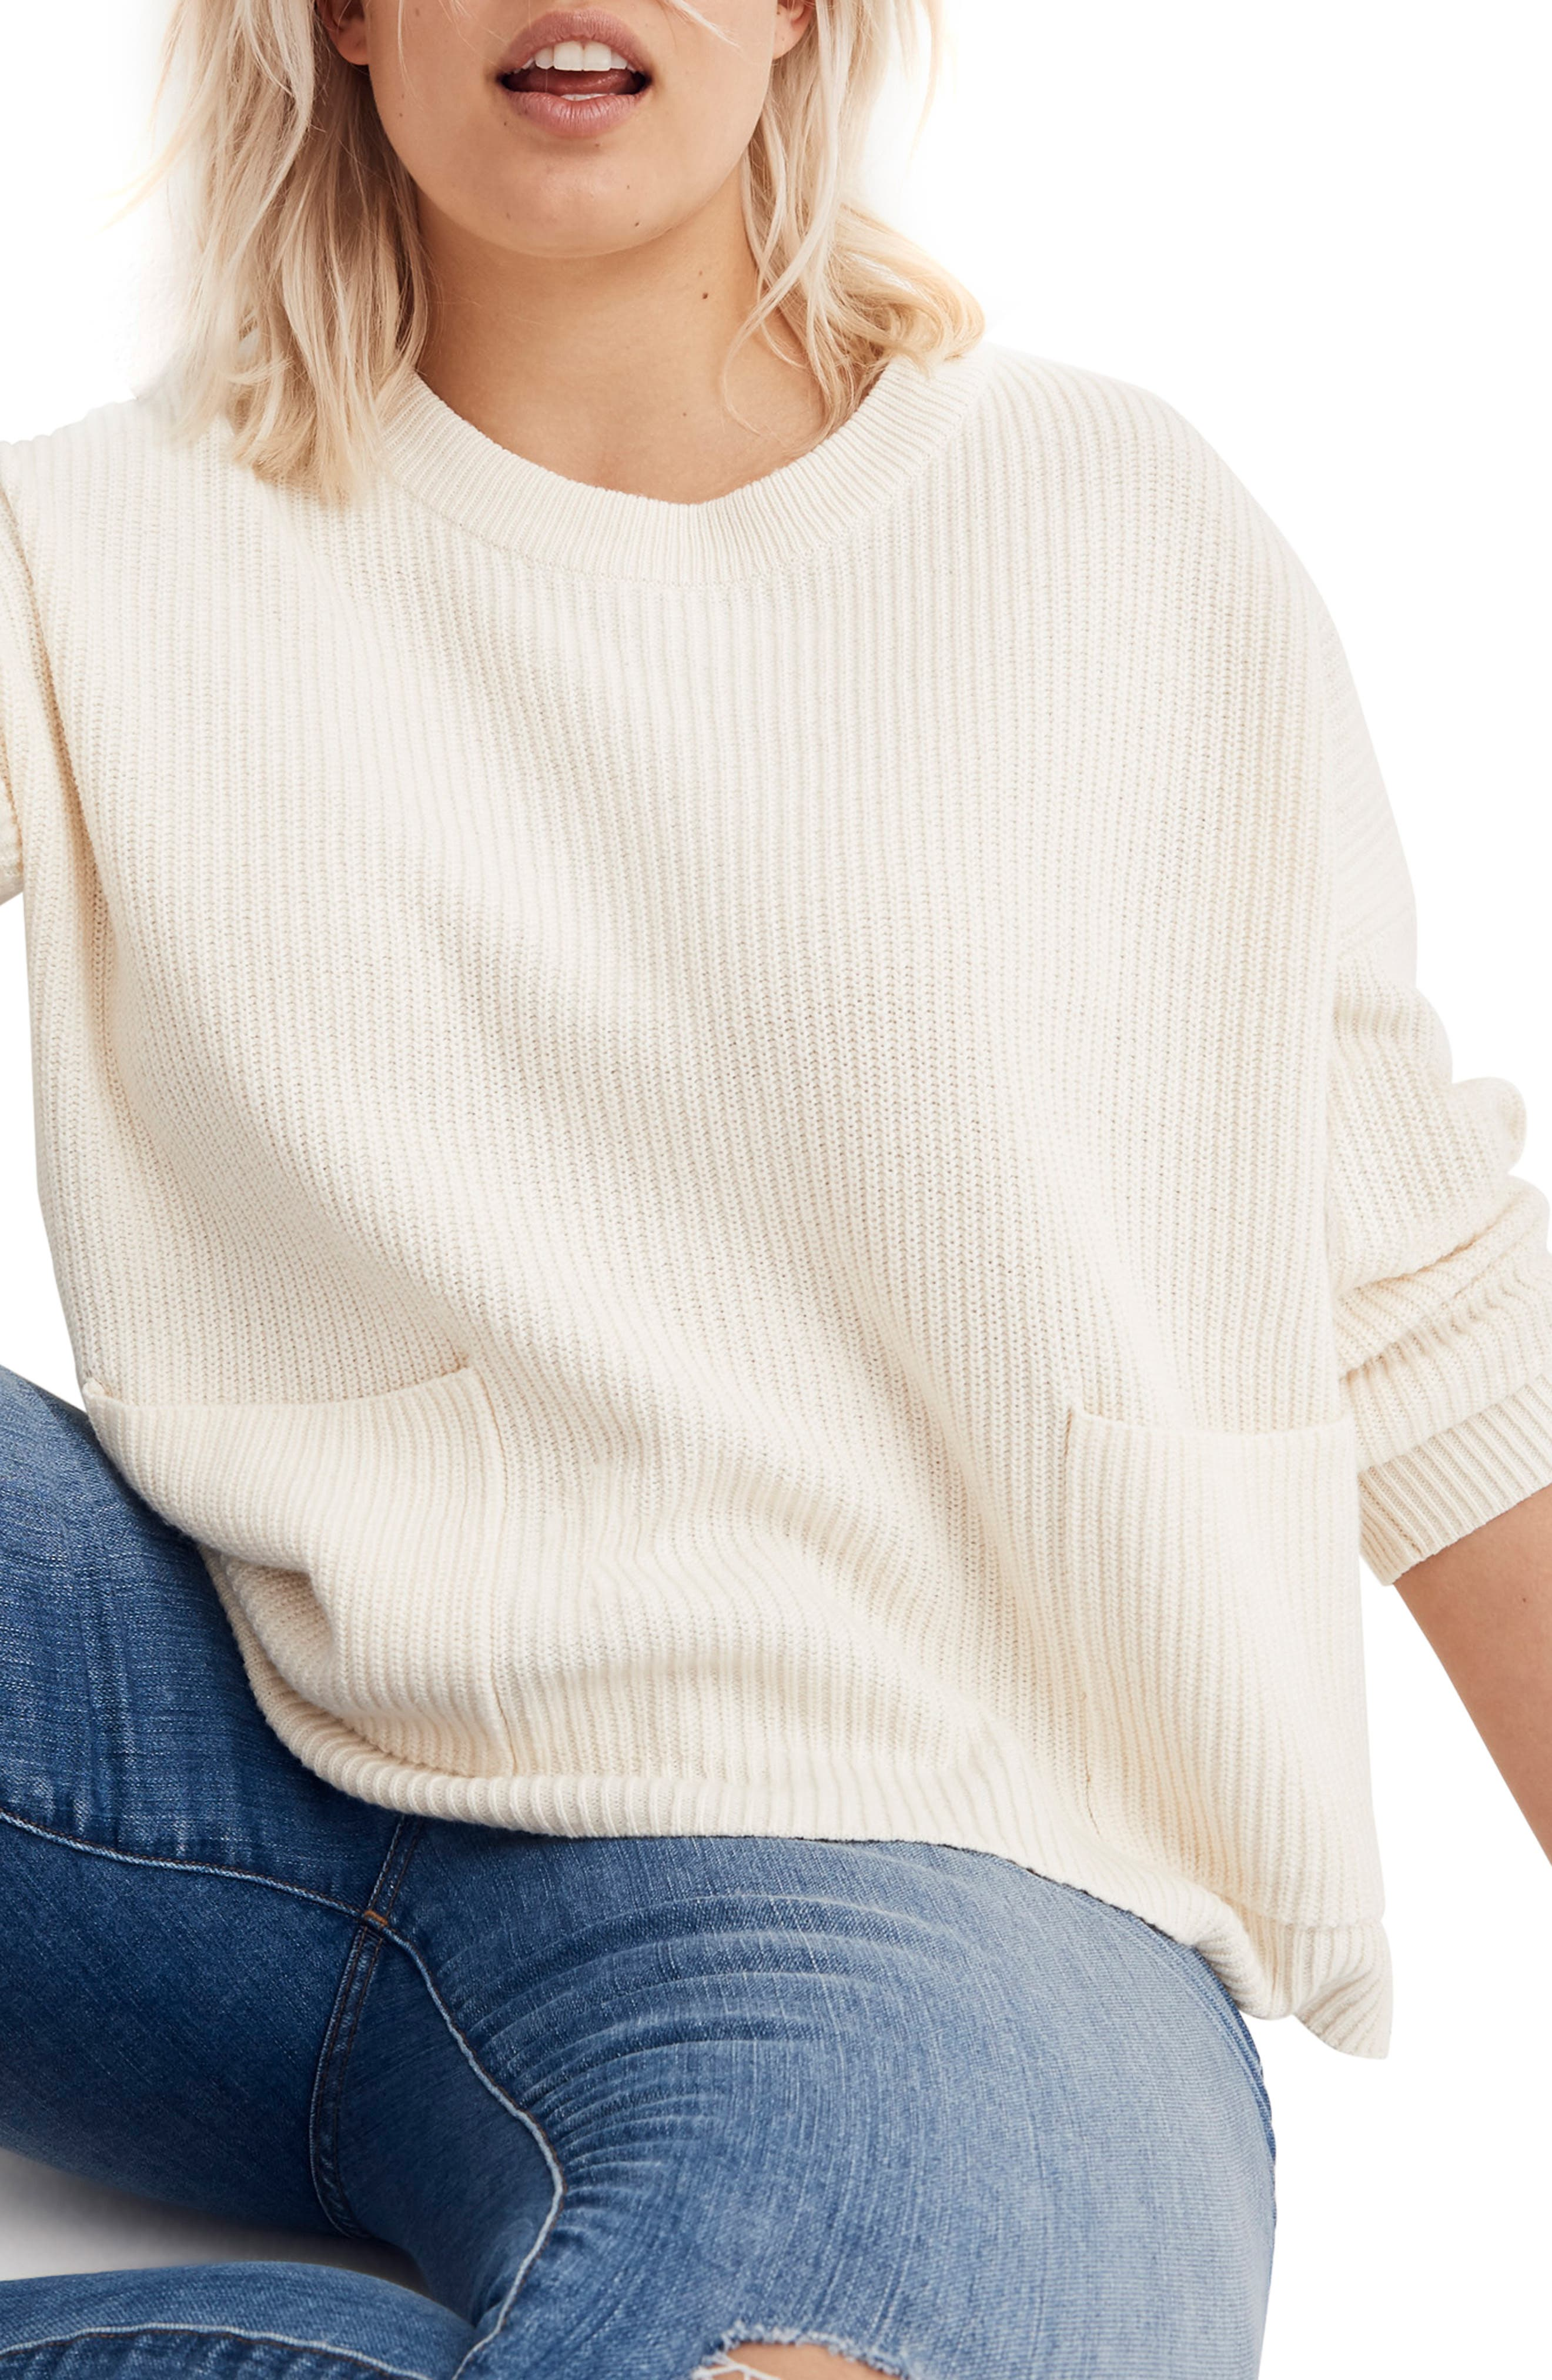 Patch Pocket Pullover Sweater,                             Alternate thumbnail 2, color,                             BRIGHT IVORY